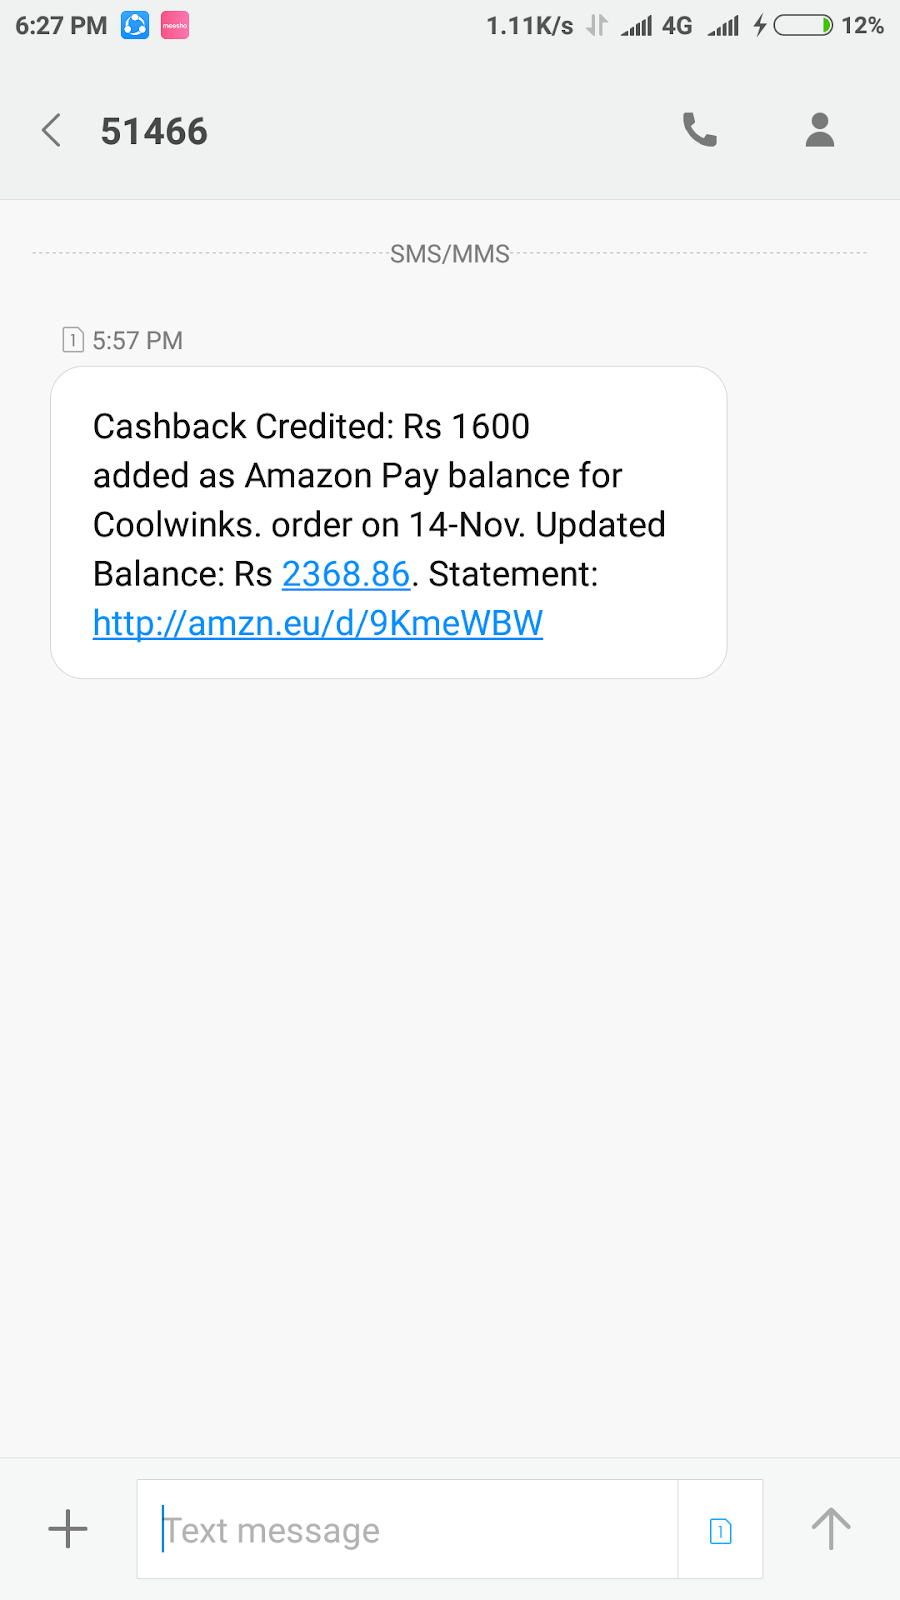 Get Free Recharge Tricks, Cashback offer, Tech Knowledge etc